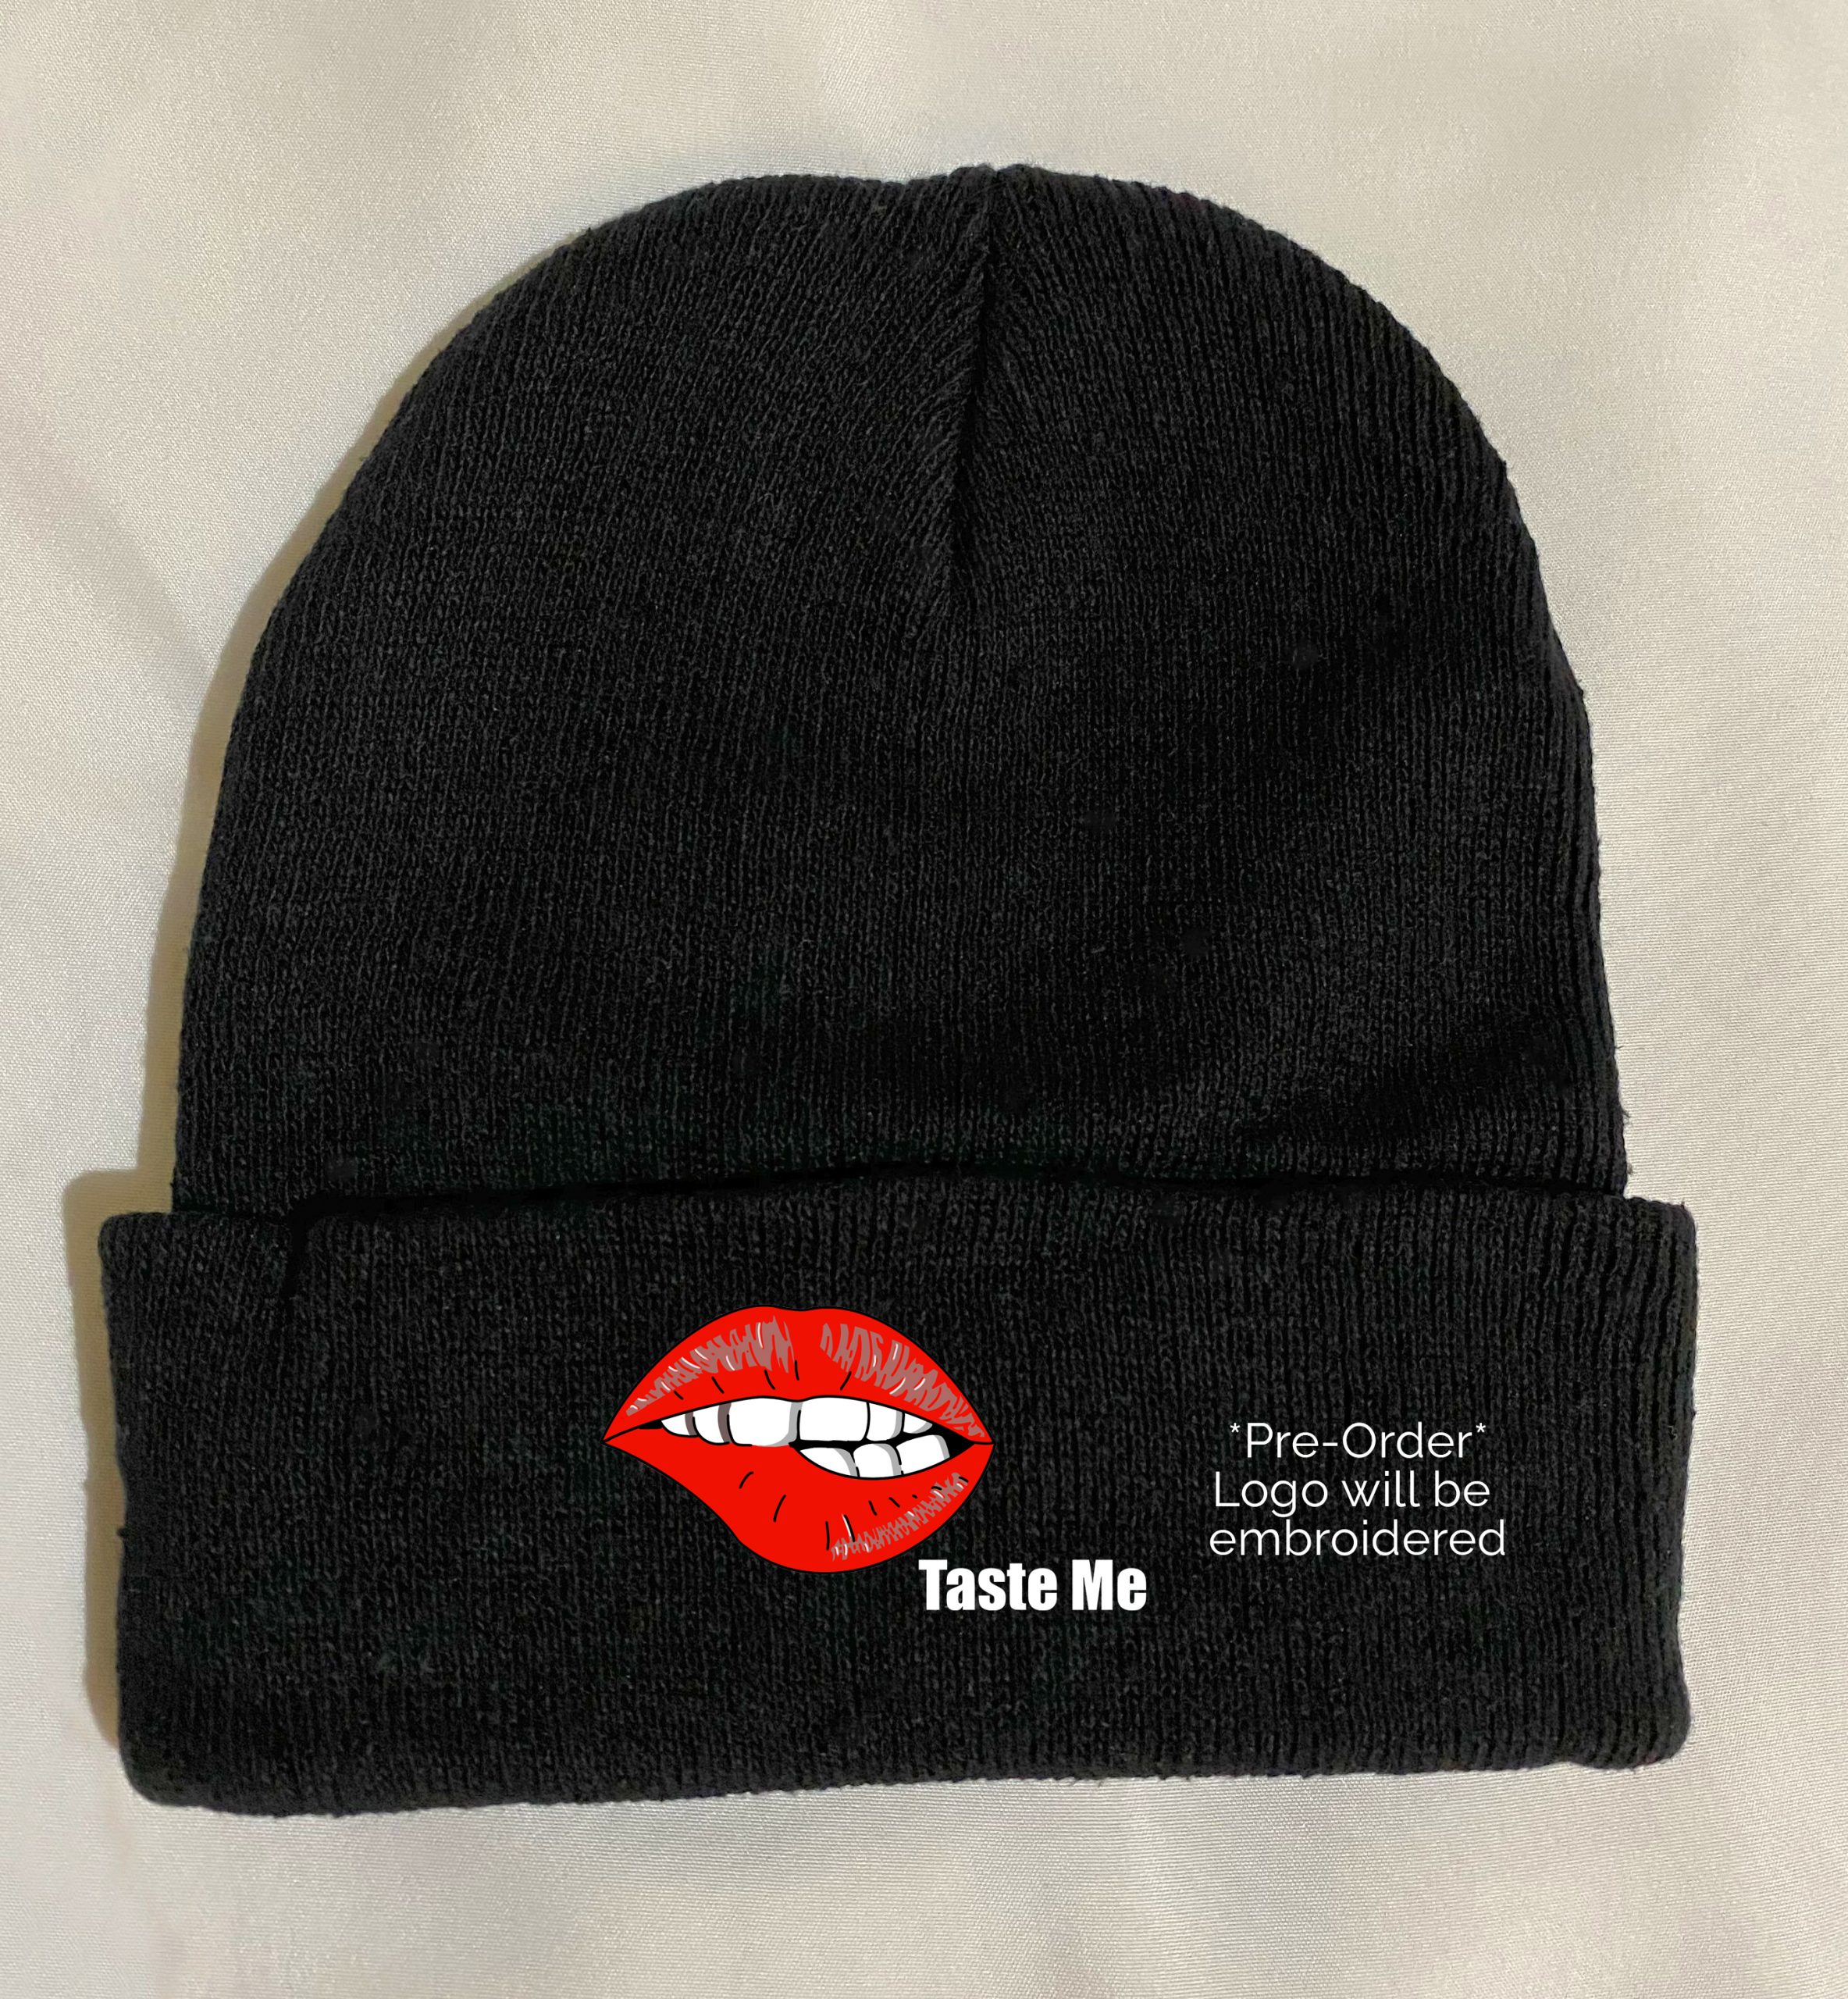 In Bed With Nikky Taste Me Black Beanie